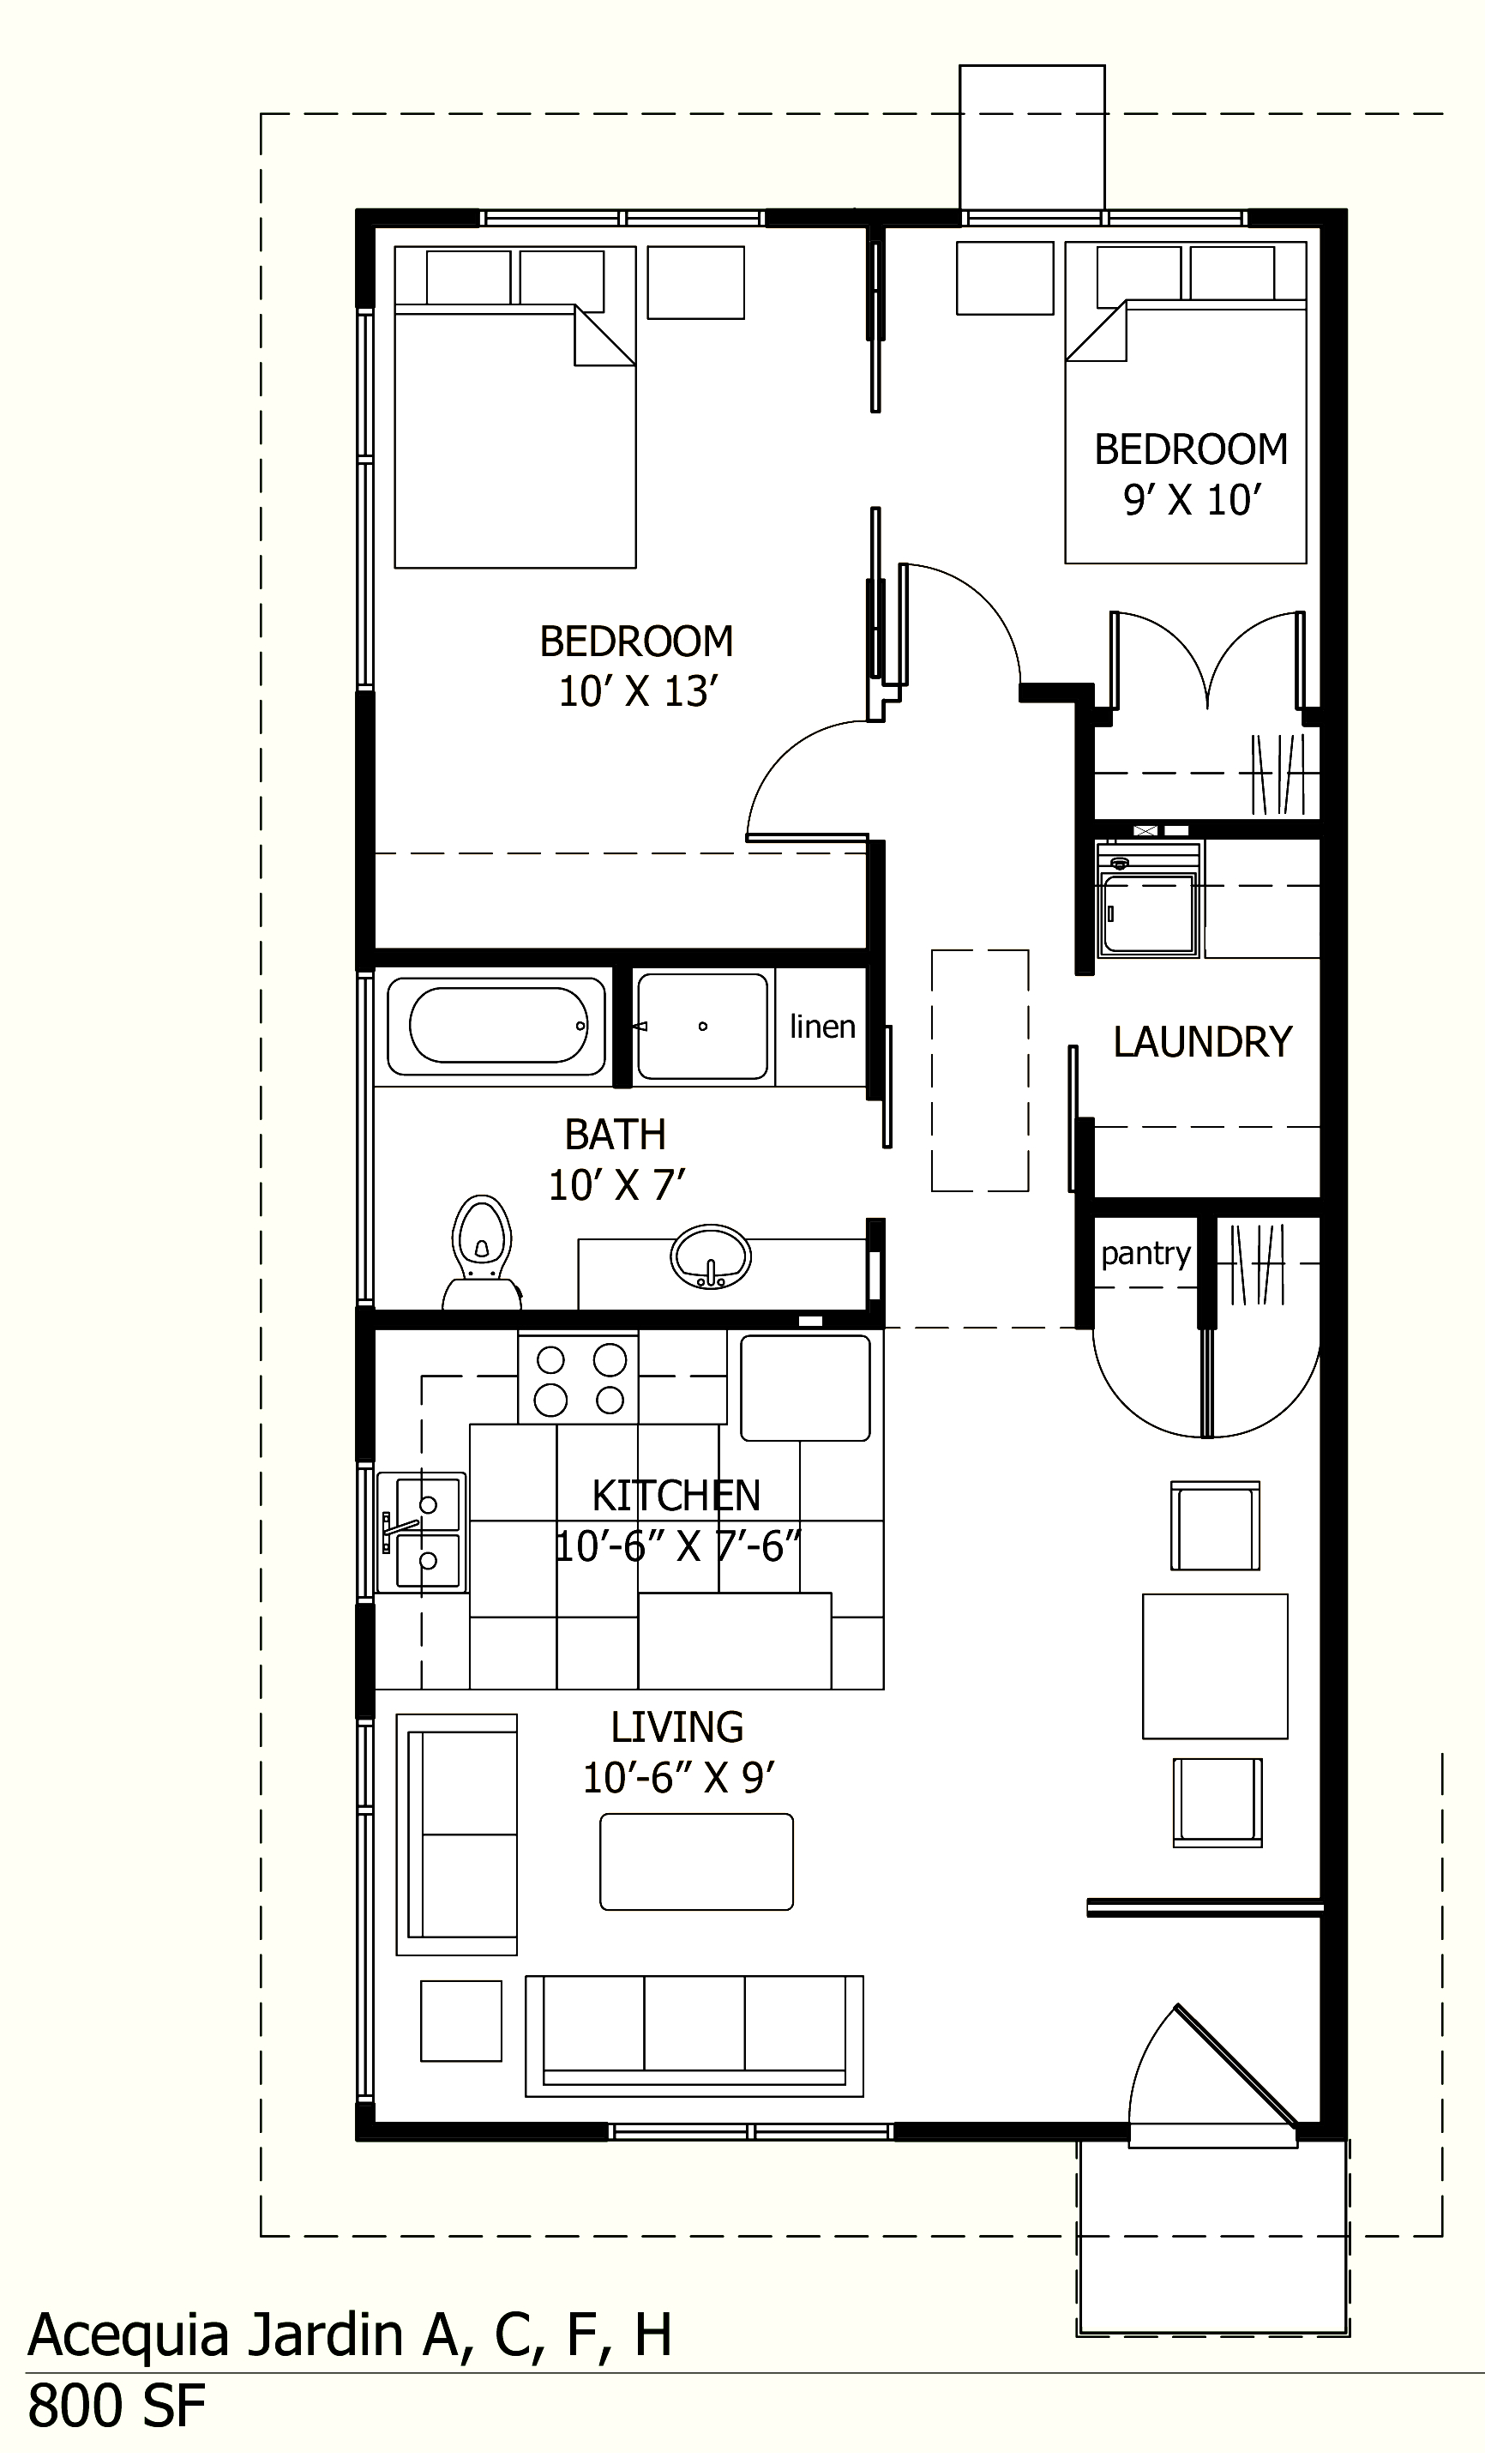 beautiful floor plan 1200 sq ft house pictures today designs house plan at 1200 sq ft likewise white house floor plan 1800 besides